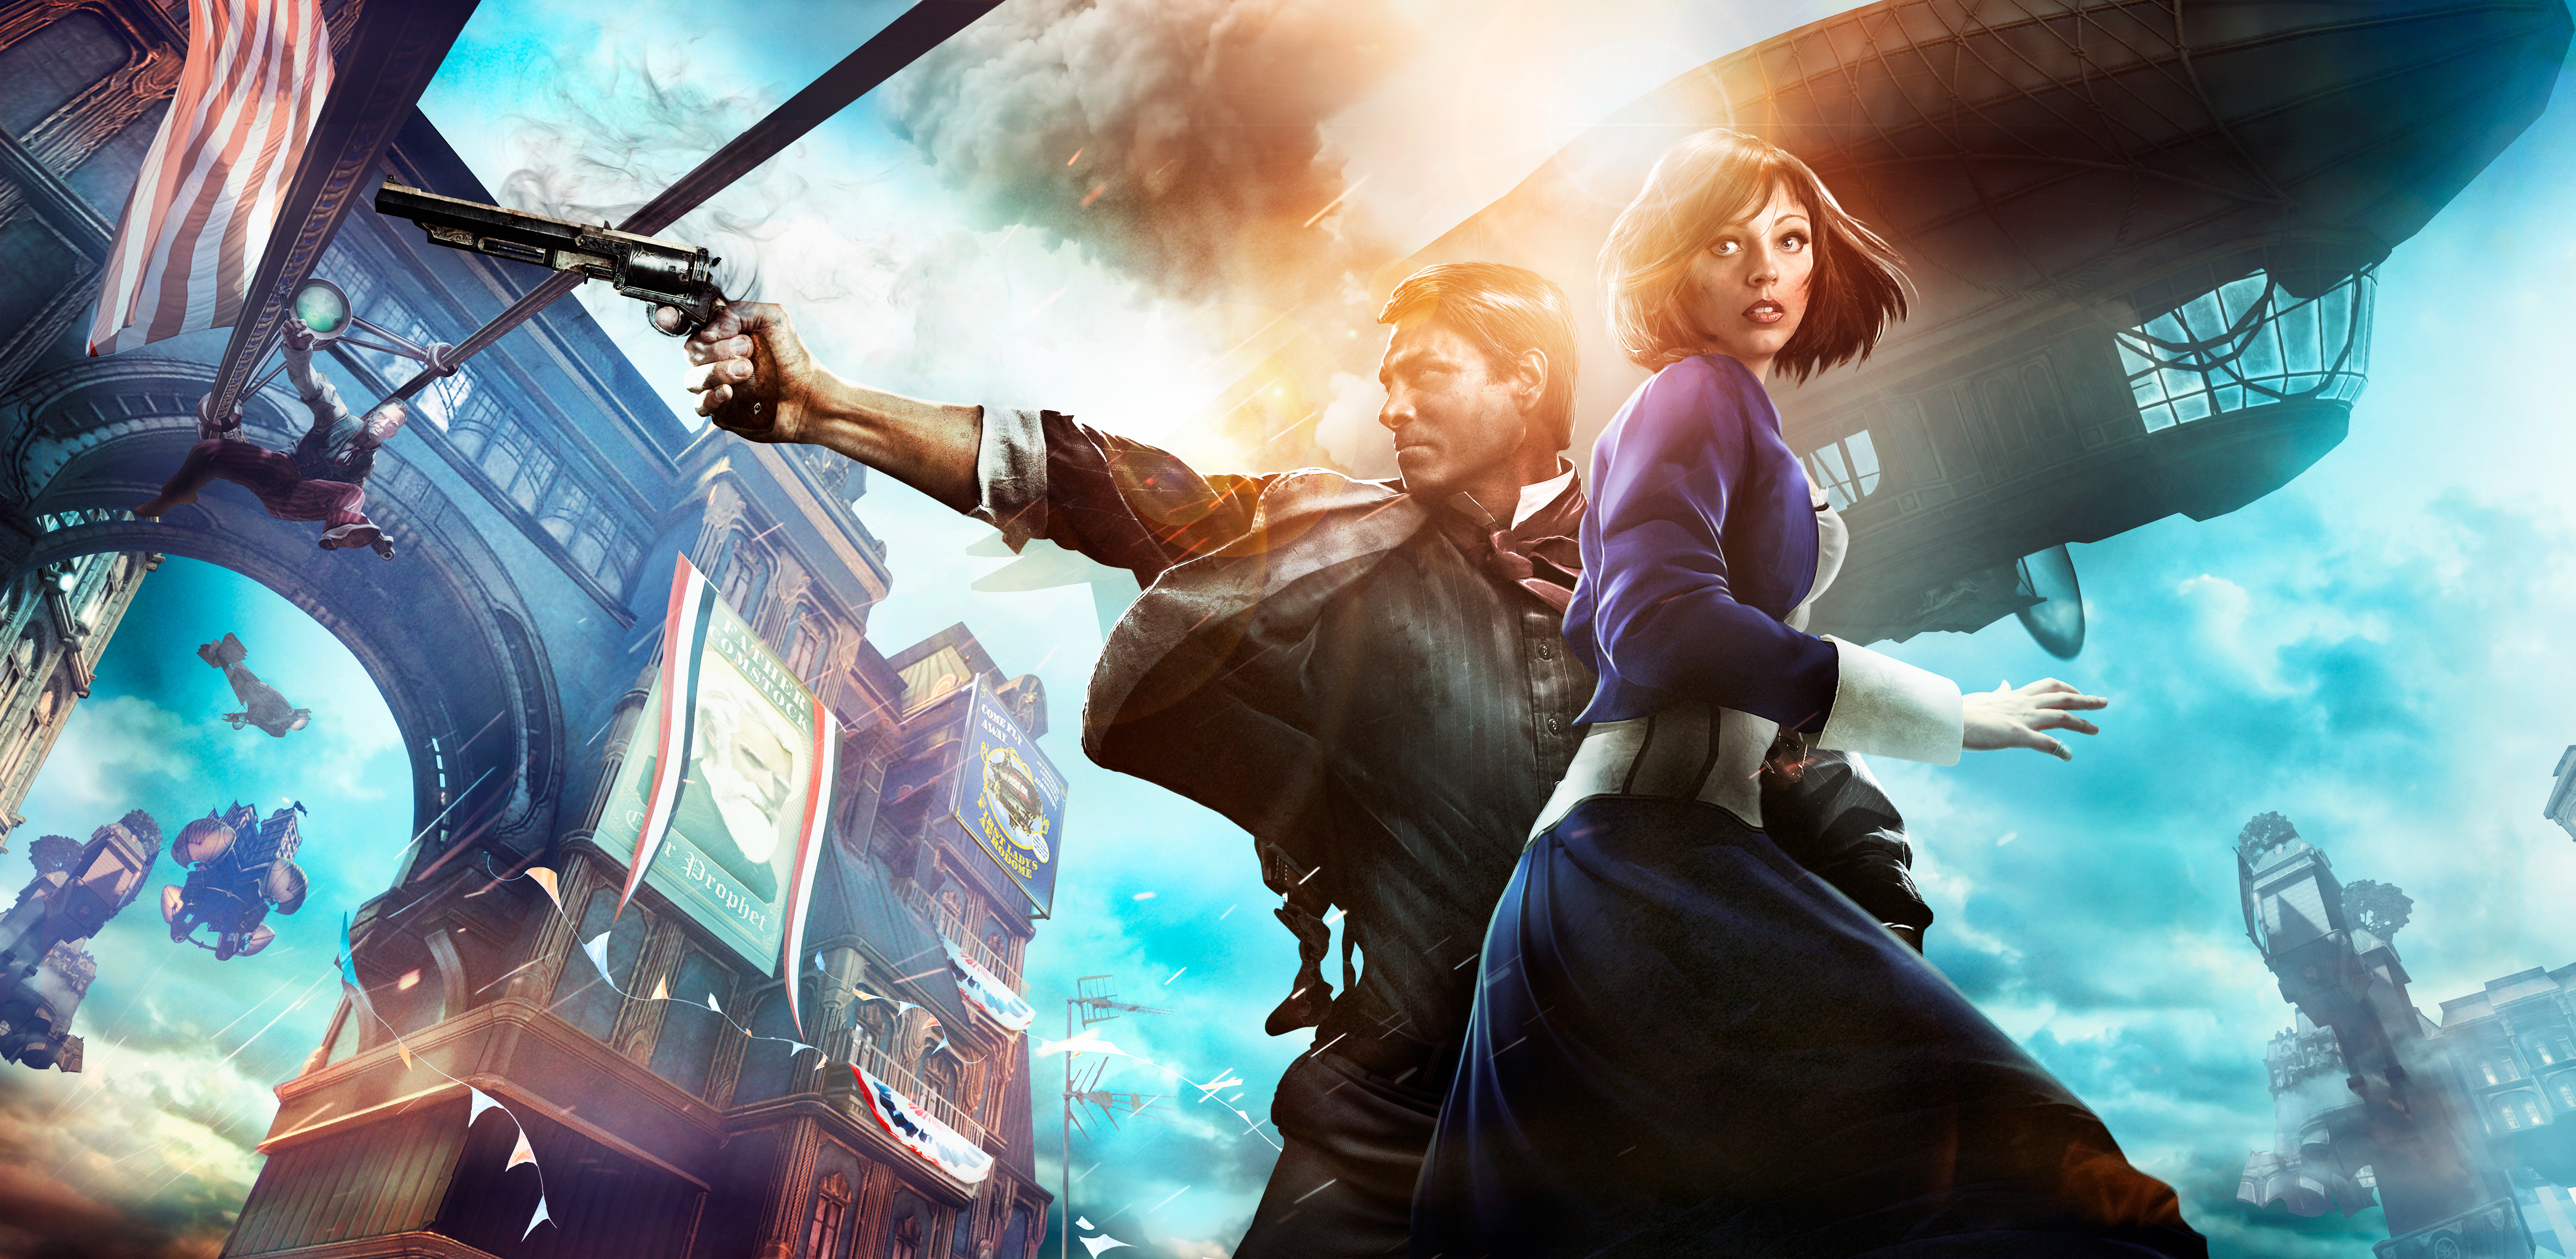 188 Bioshock Infinite HD Wallpapers Background Images 7184x3512